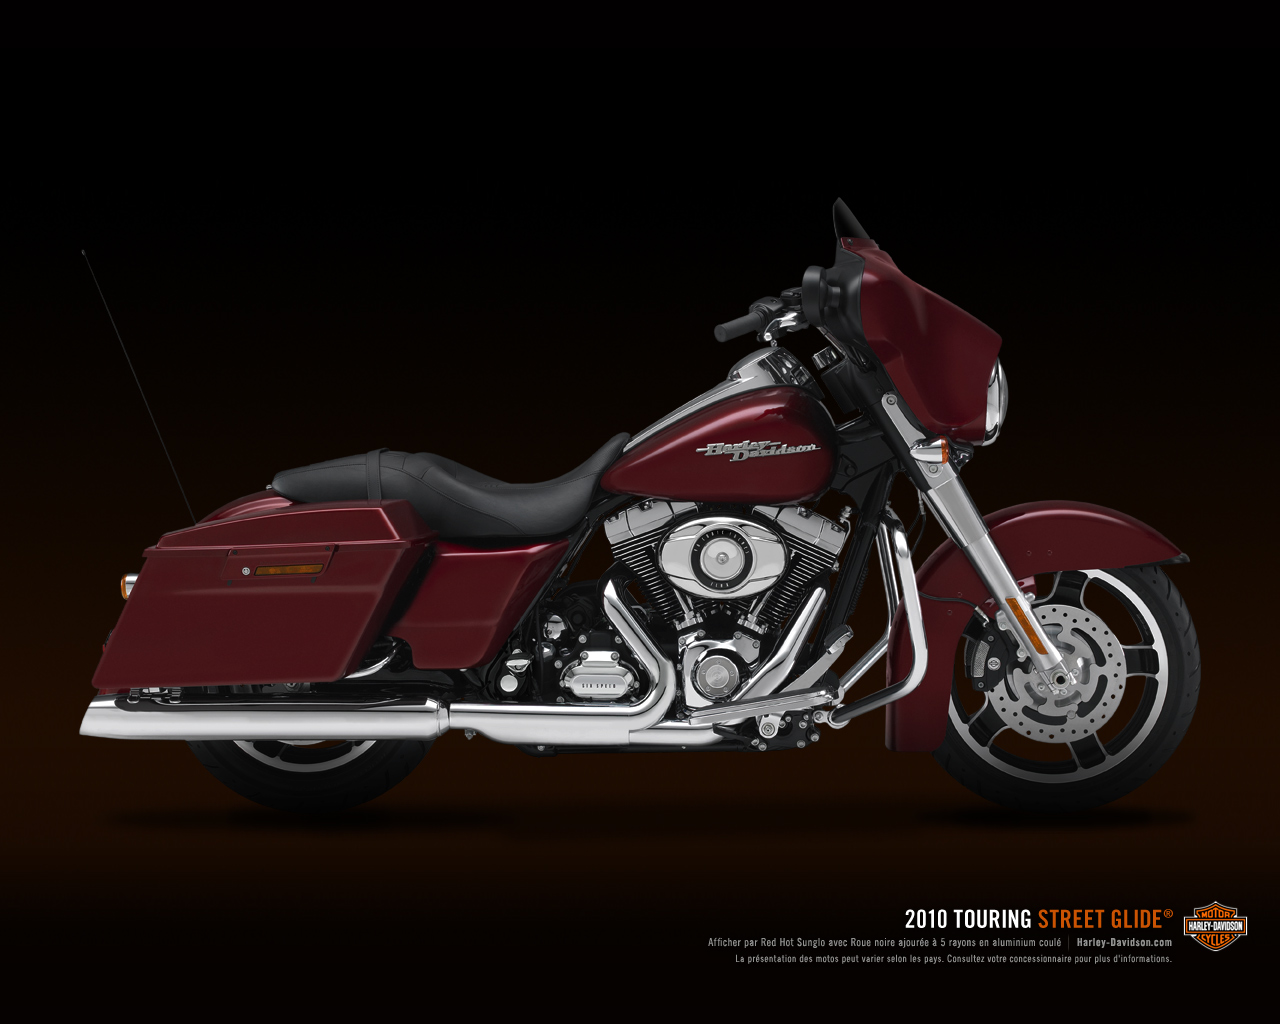 37 Street Glide Wallpapers And Screensavers On Wallpapersafari